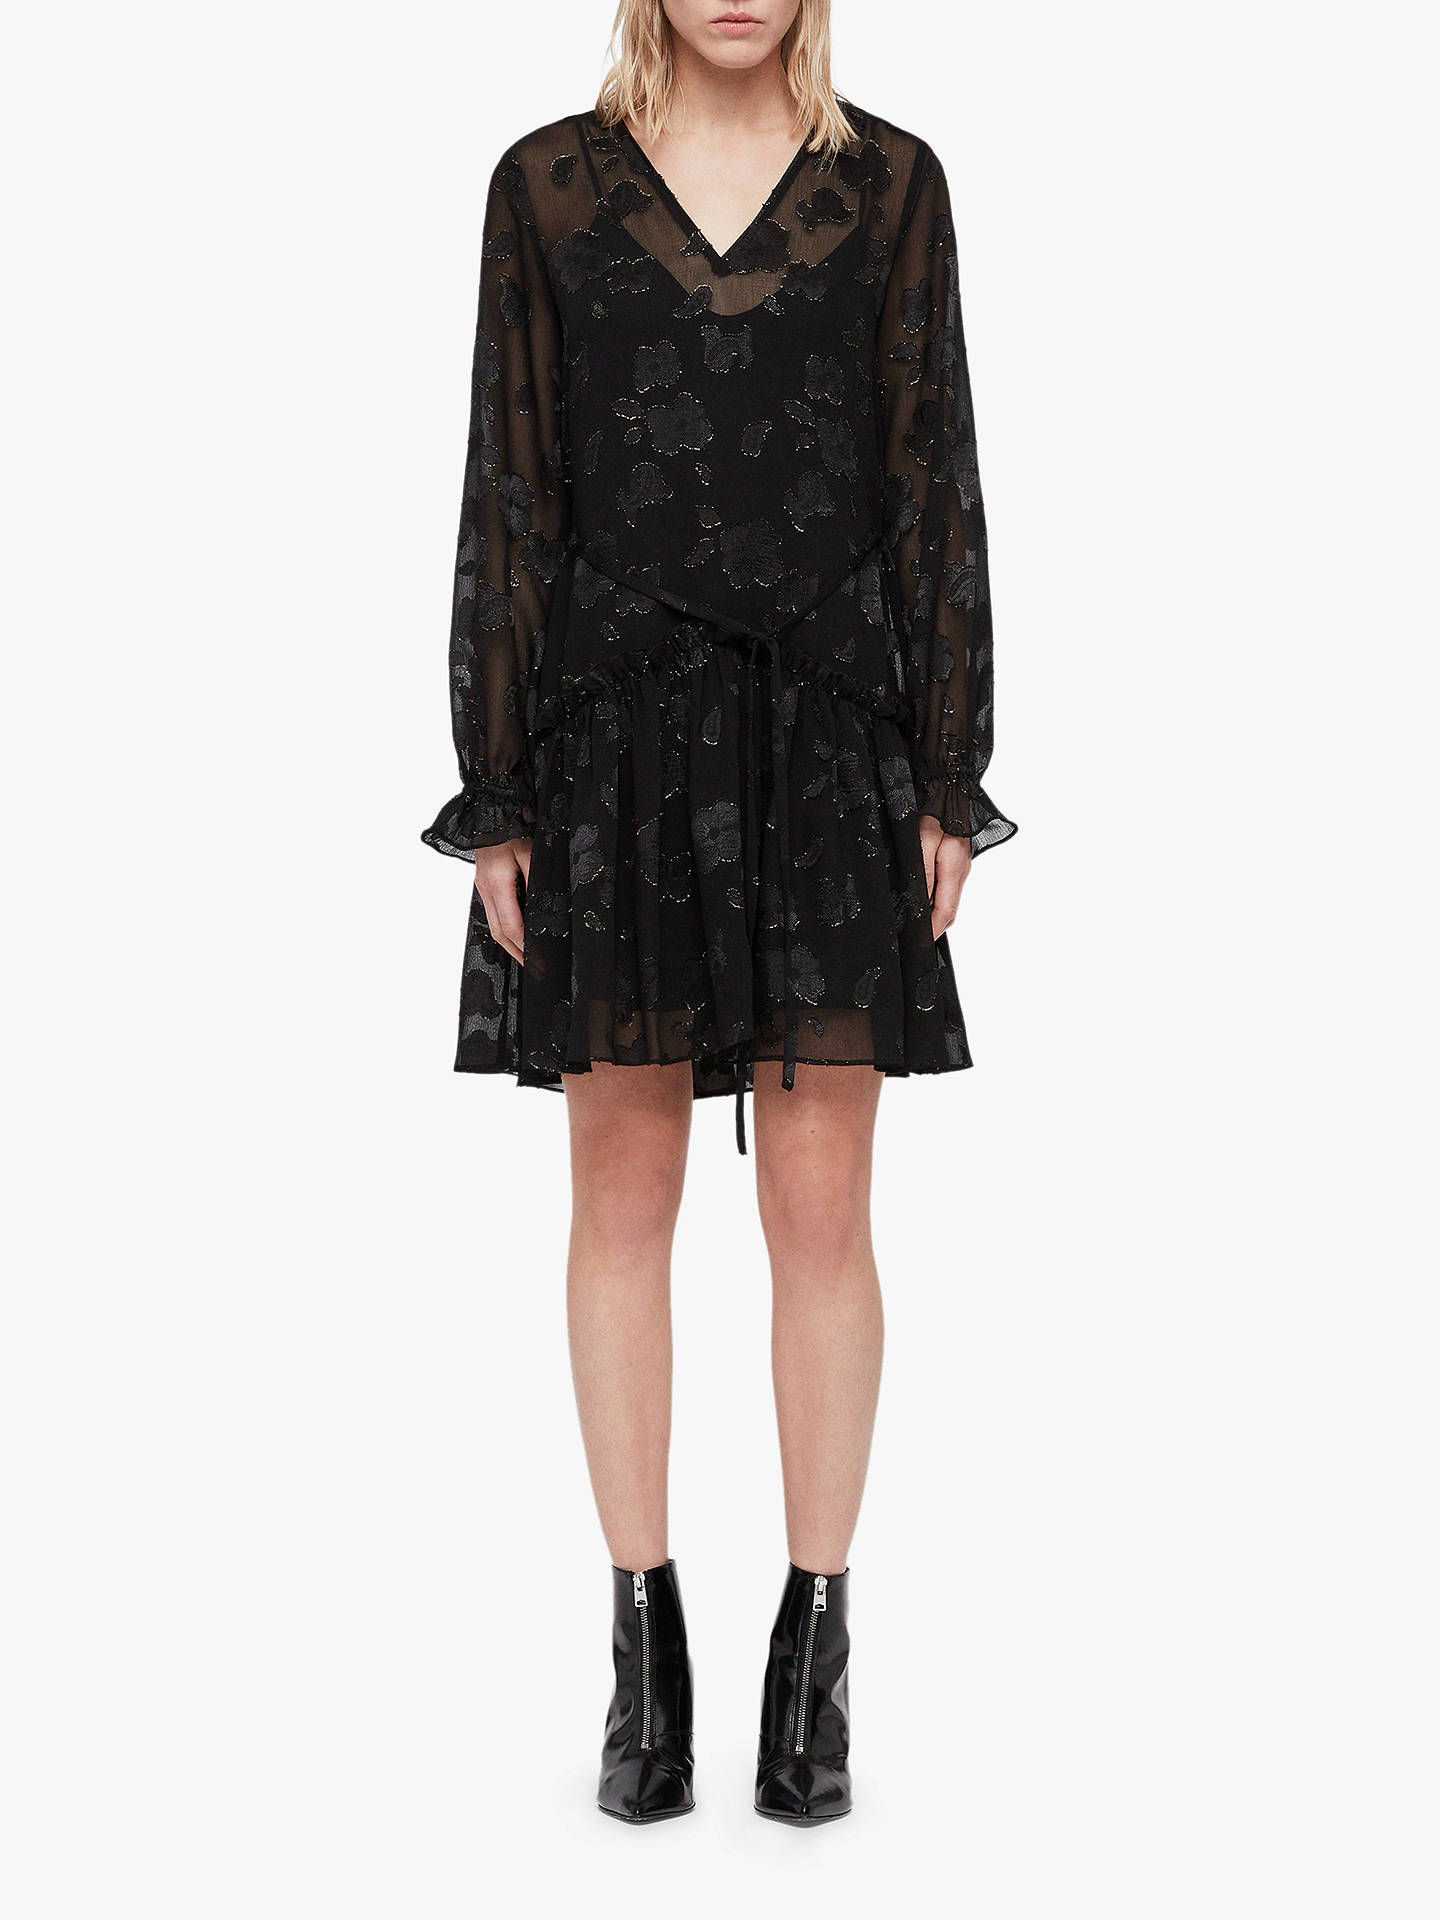 BuyAllSaints Alia Flora Dress, Black/Gold, L Online at johnlewis.com